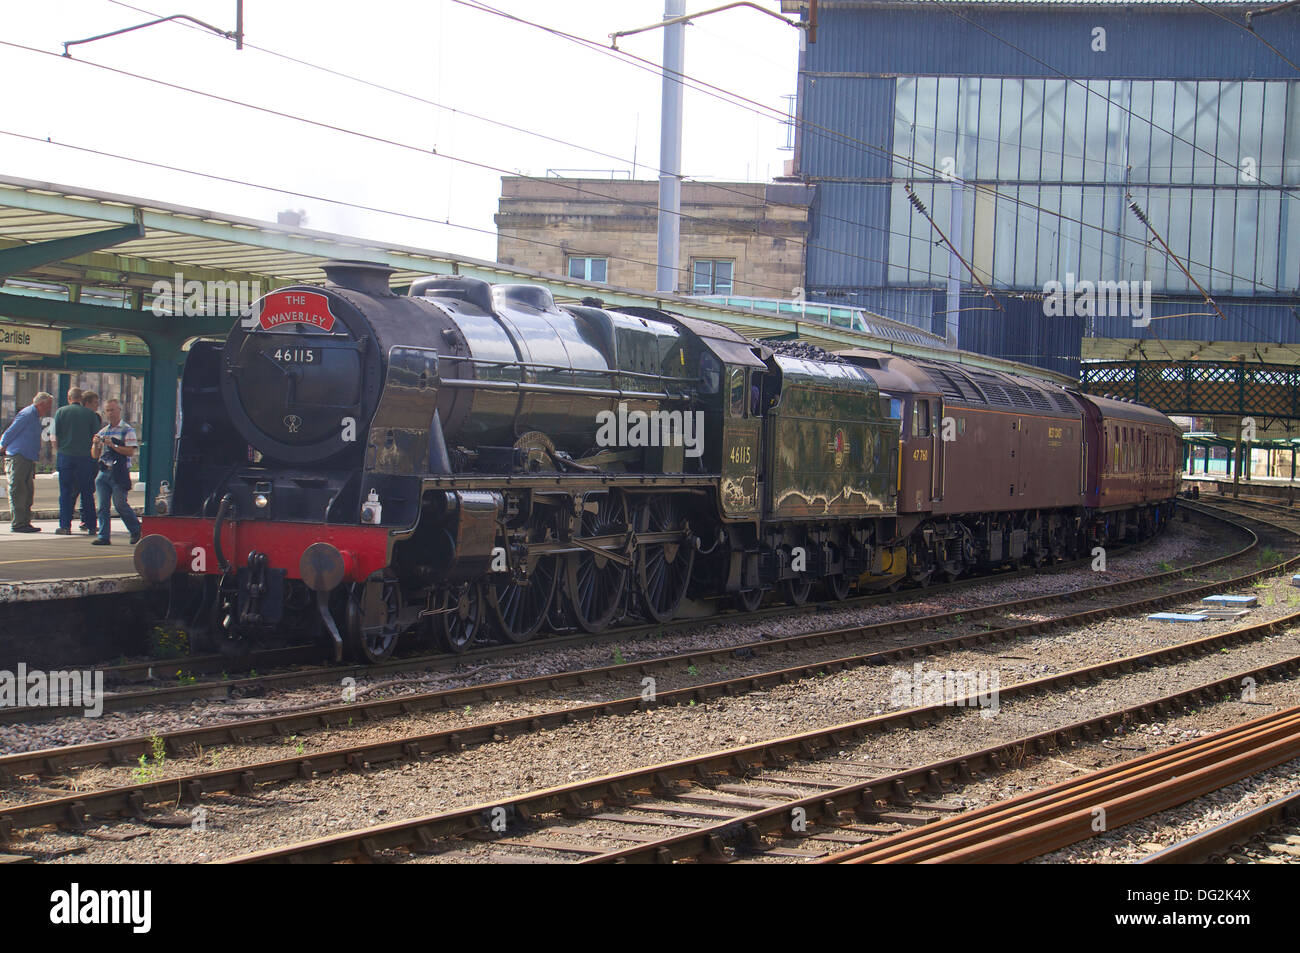 Steam locomotive 'Scots Guardsman' 46115 in Carlisle Railway Station with a special charter train. Carlisle Cumbria England. - Stock Image